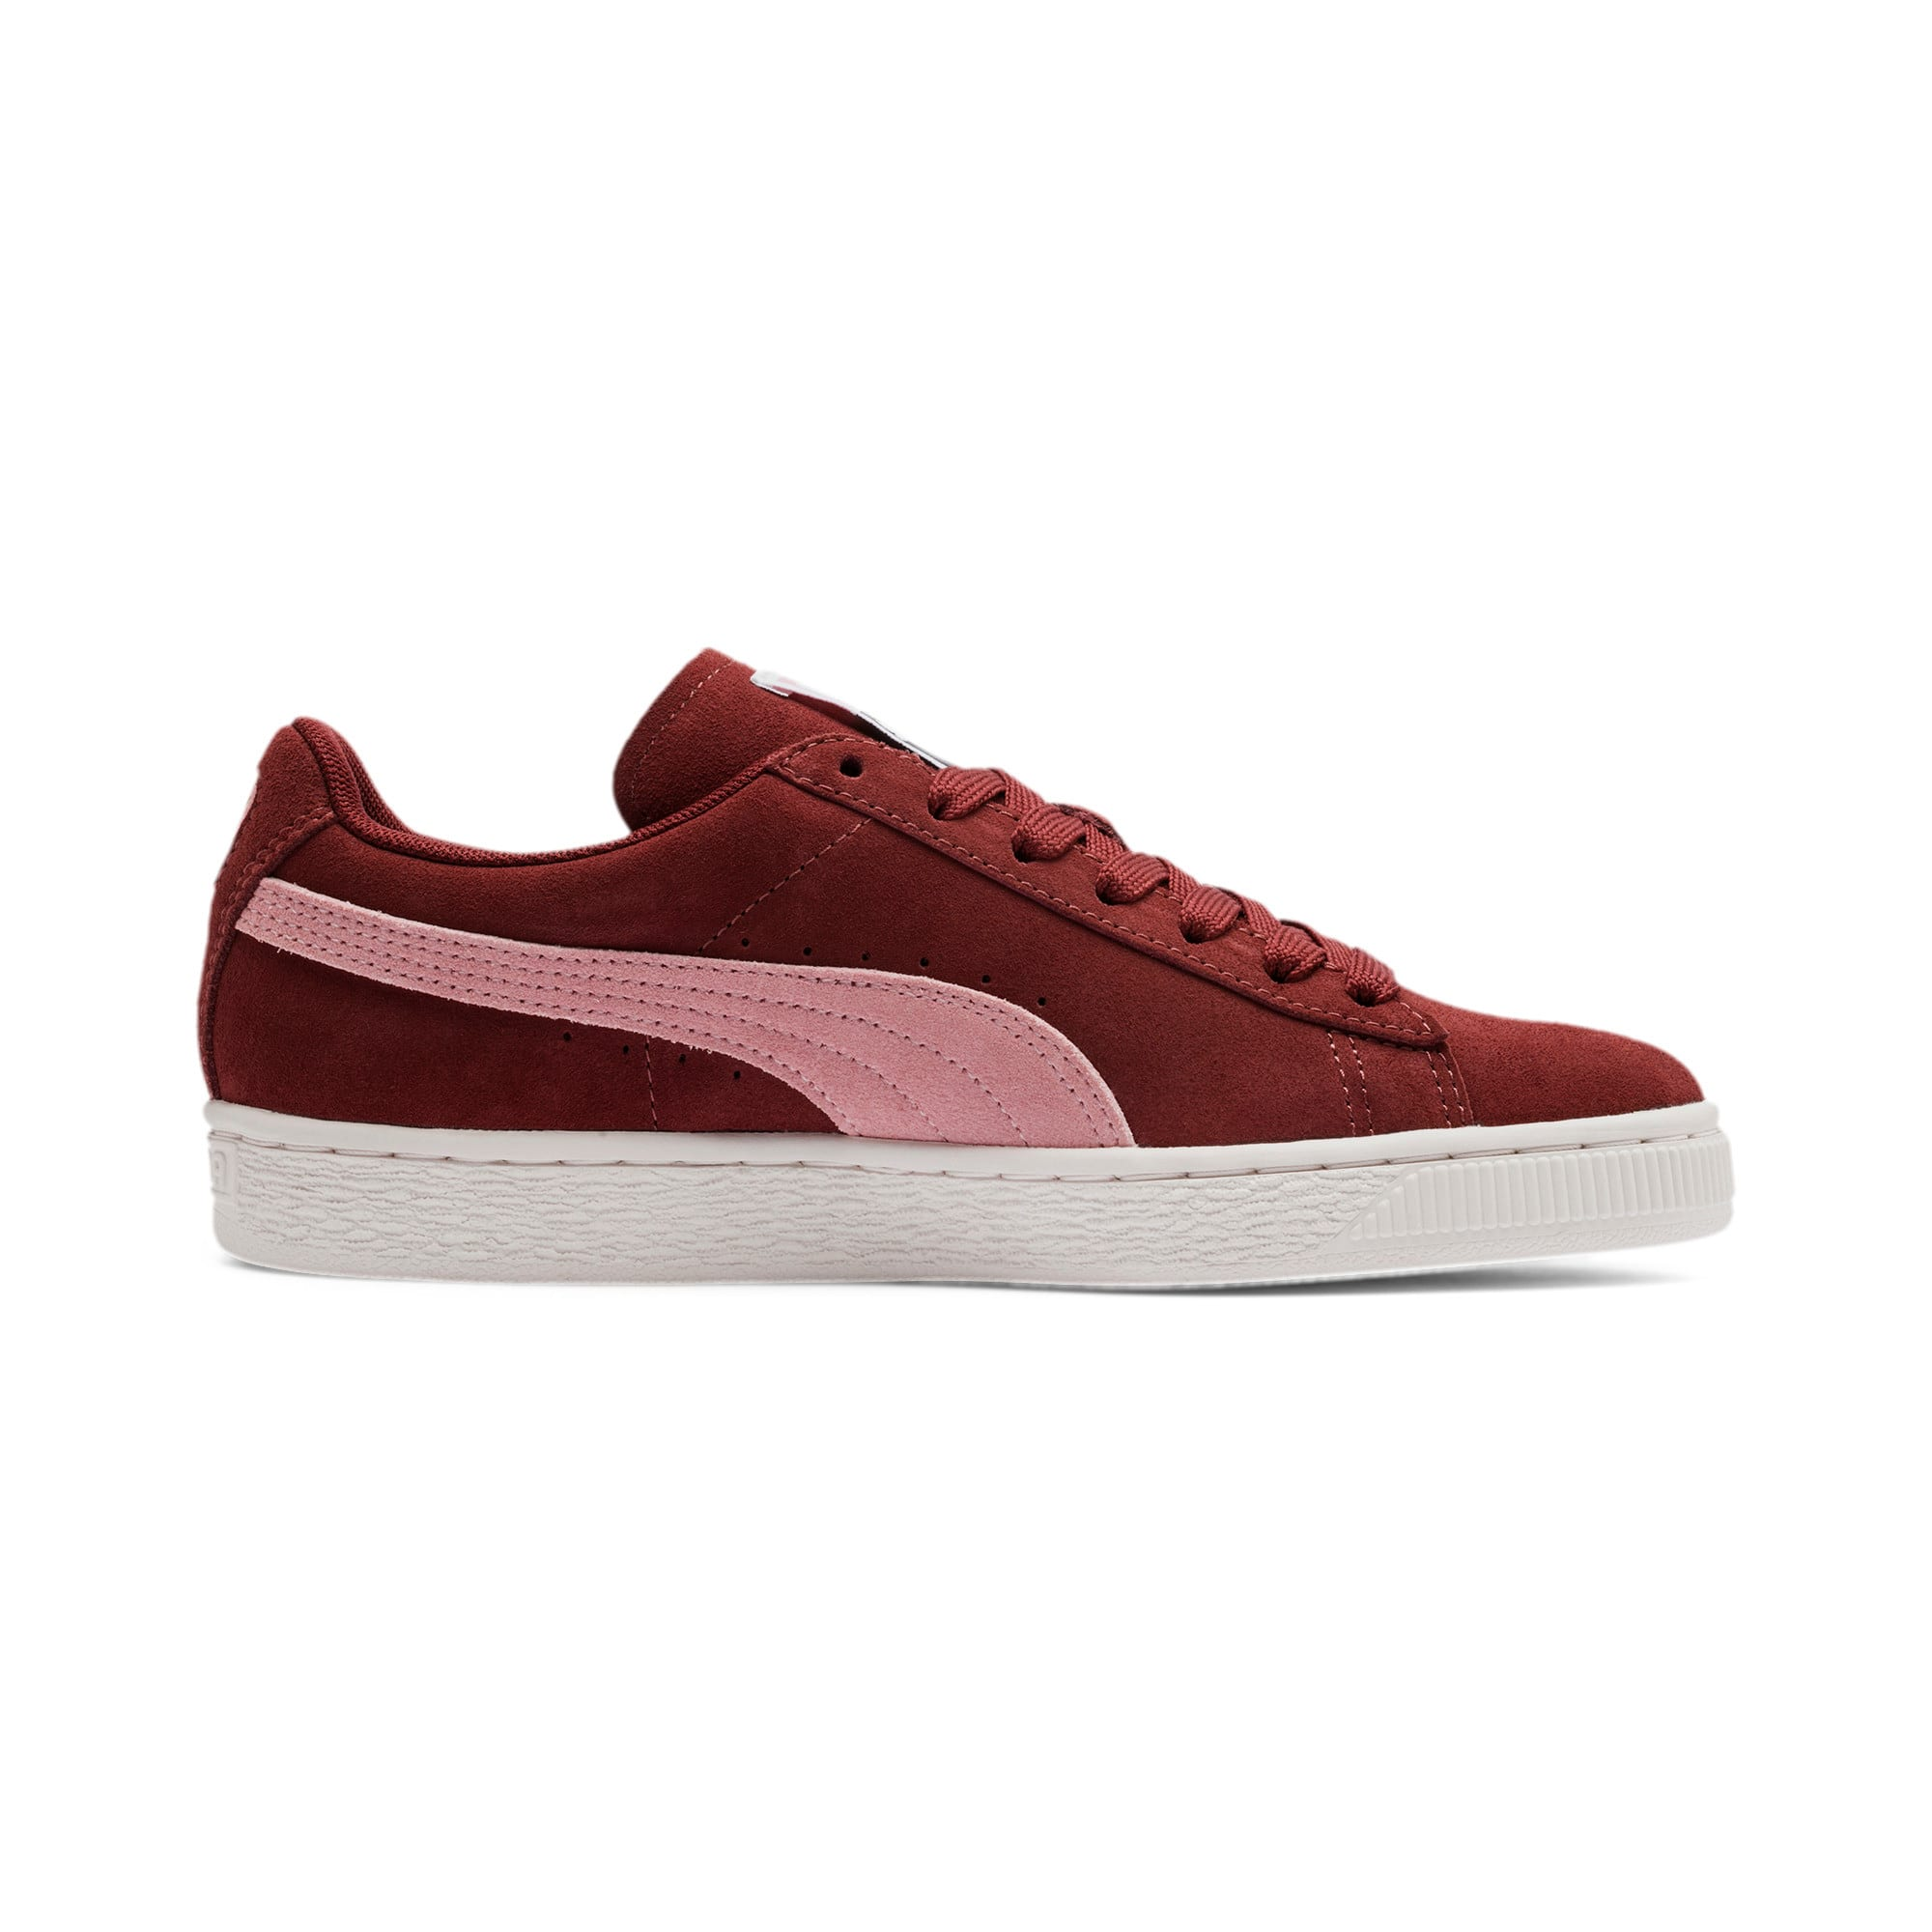 Thumbnail 6 of Suede Classic Women's Sneakers, Fired Brick-Bridal Rose, medium